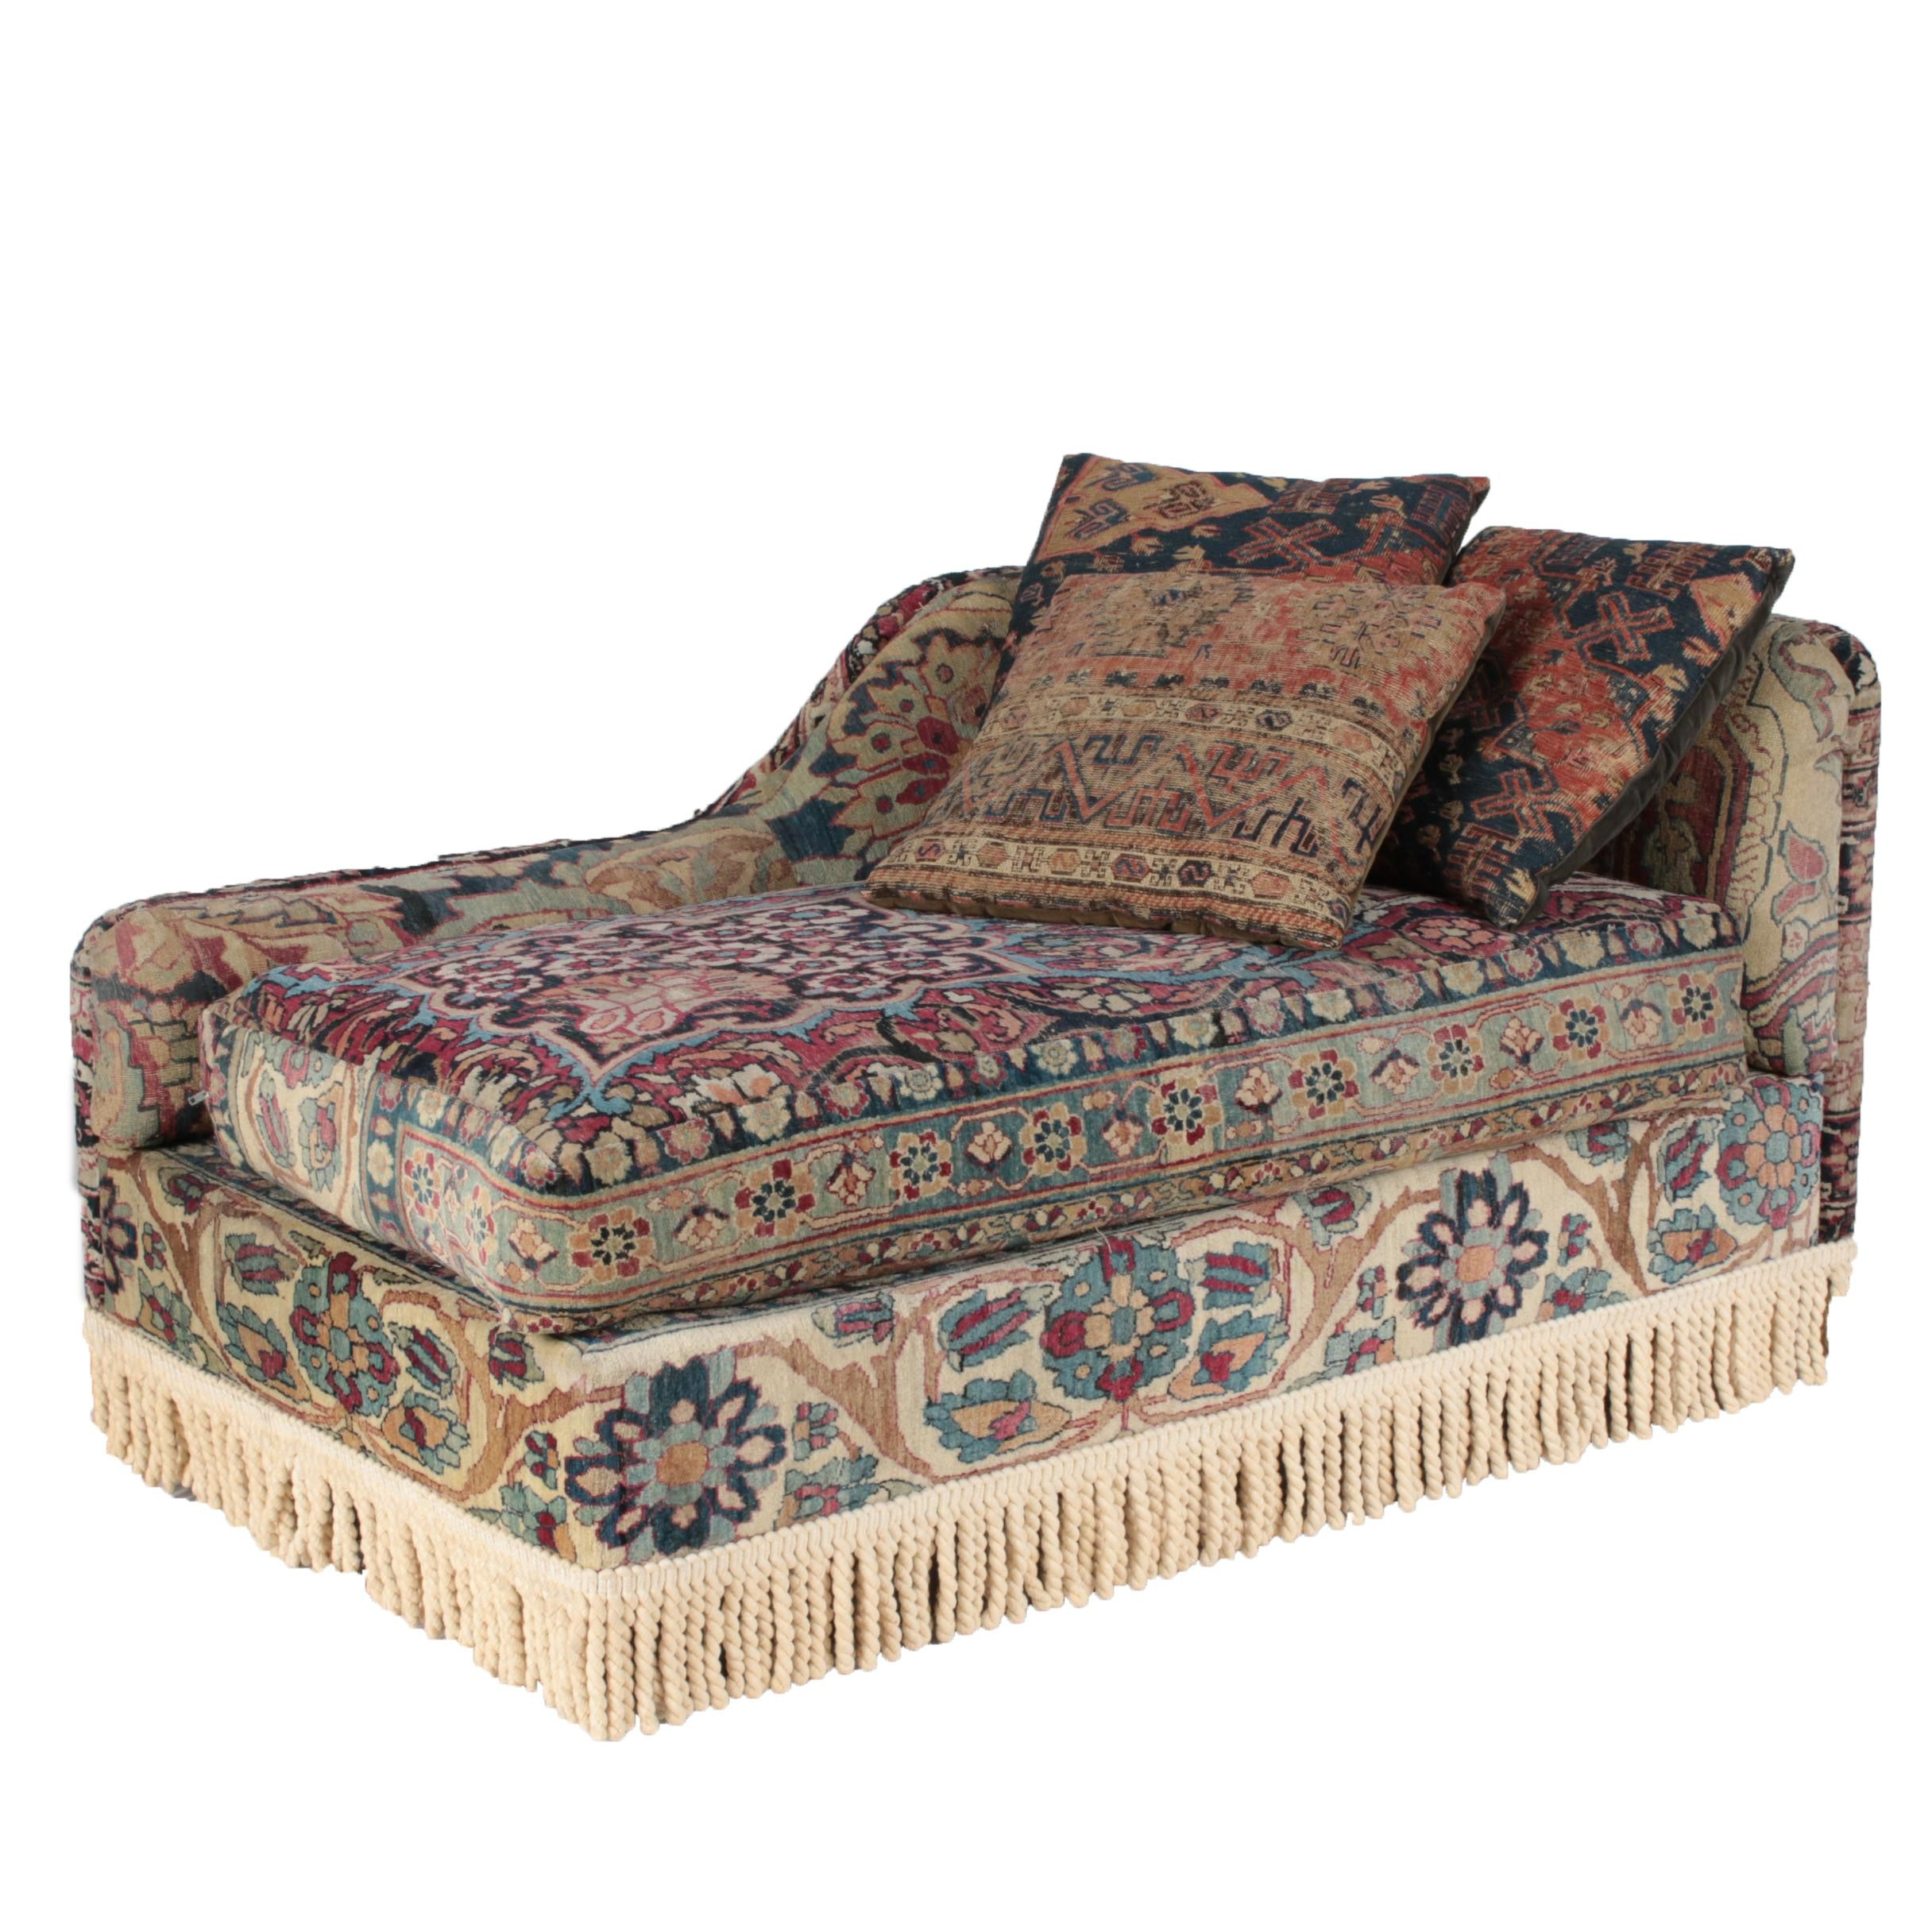 Custom Oushak-Upholstered Chaise Lounge by Seret & Sons of Santa Fe